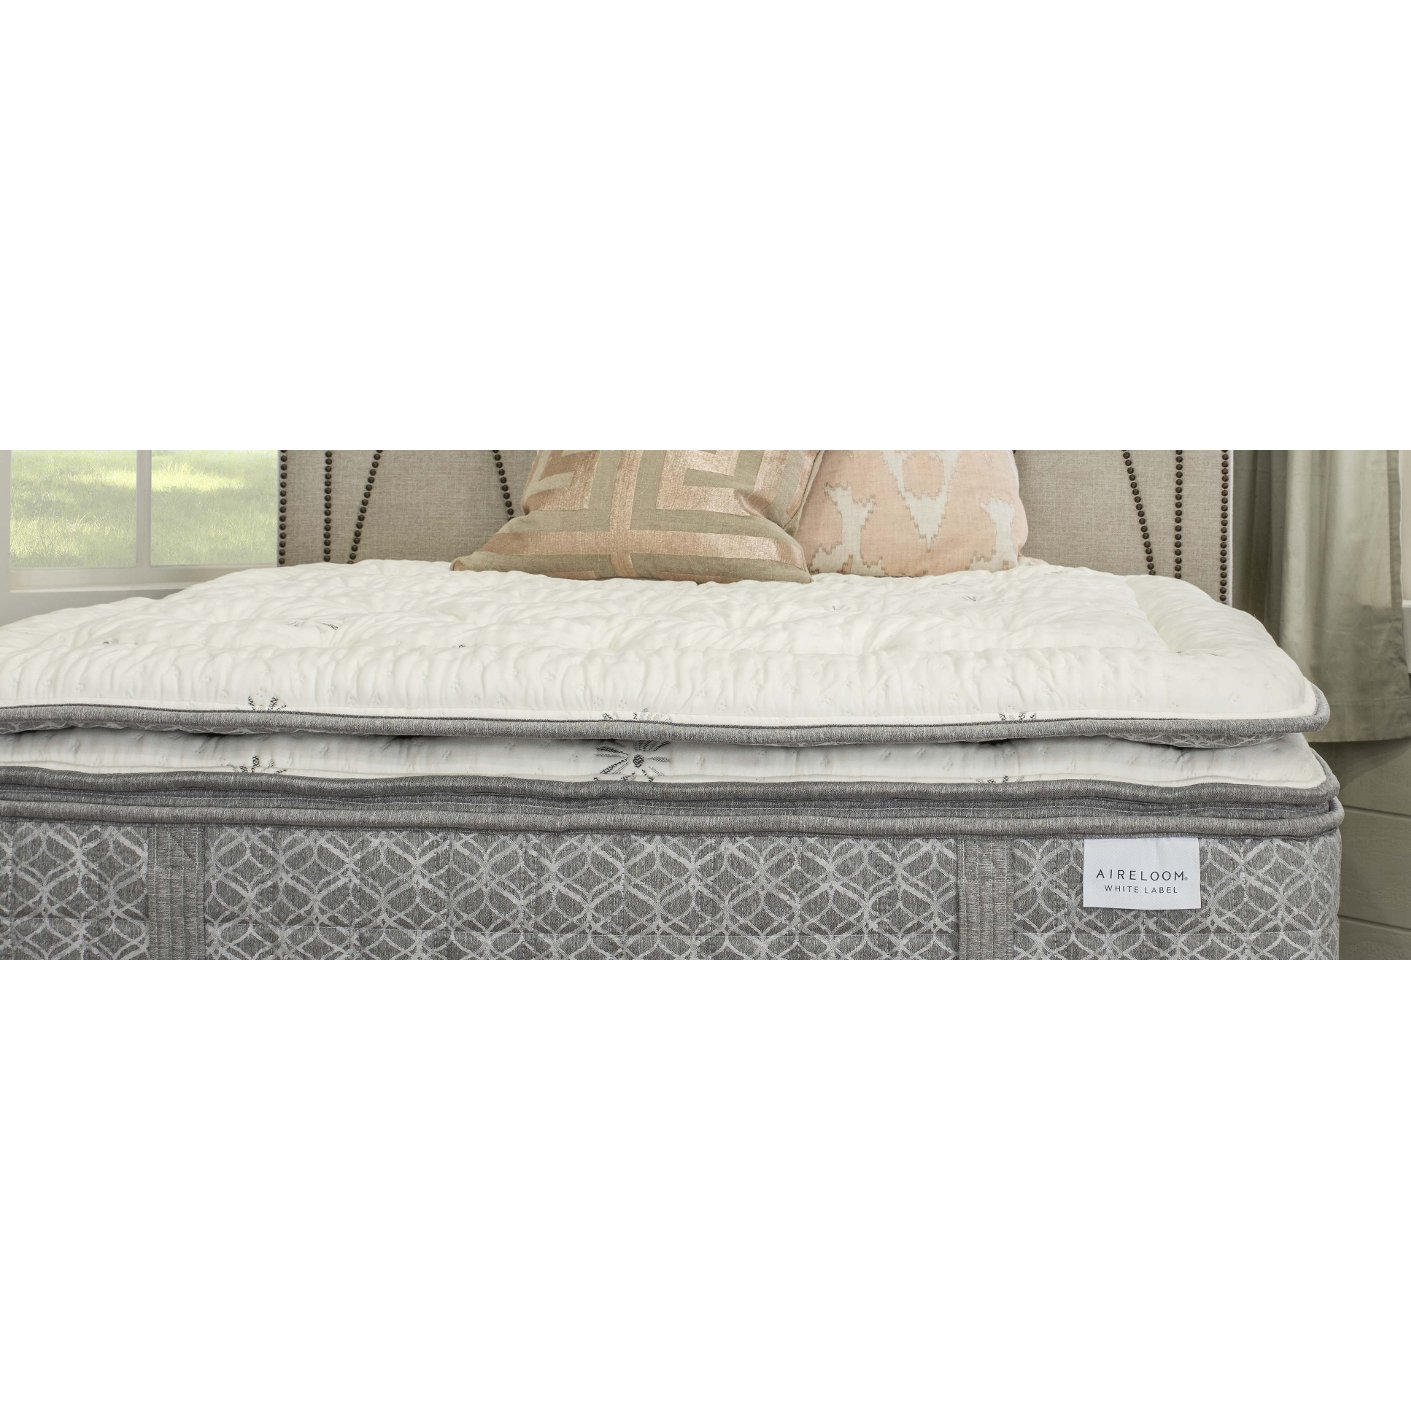 More About Aireloom Mattress